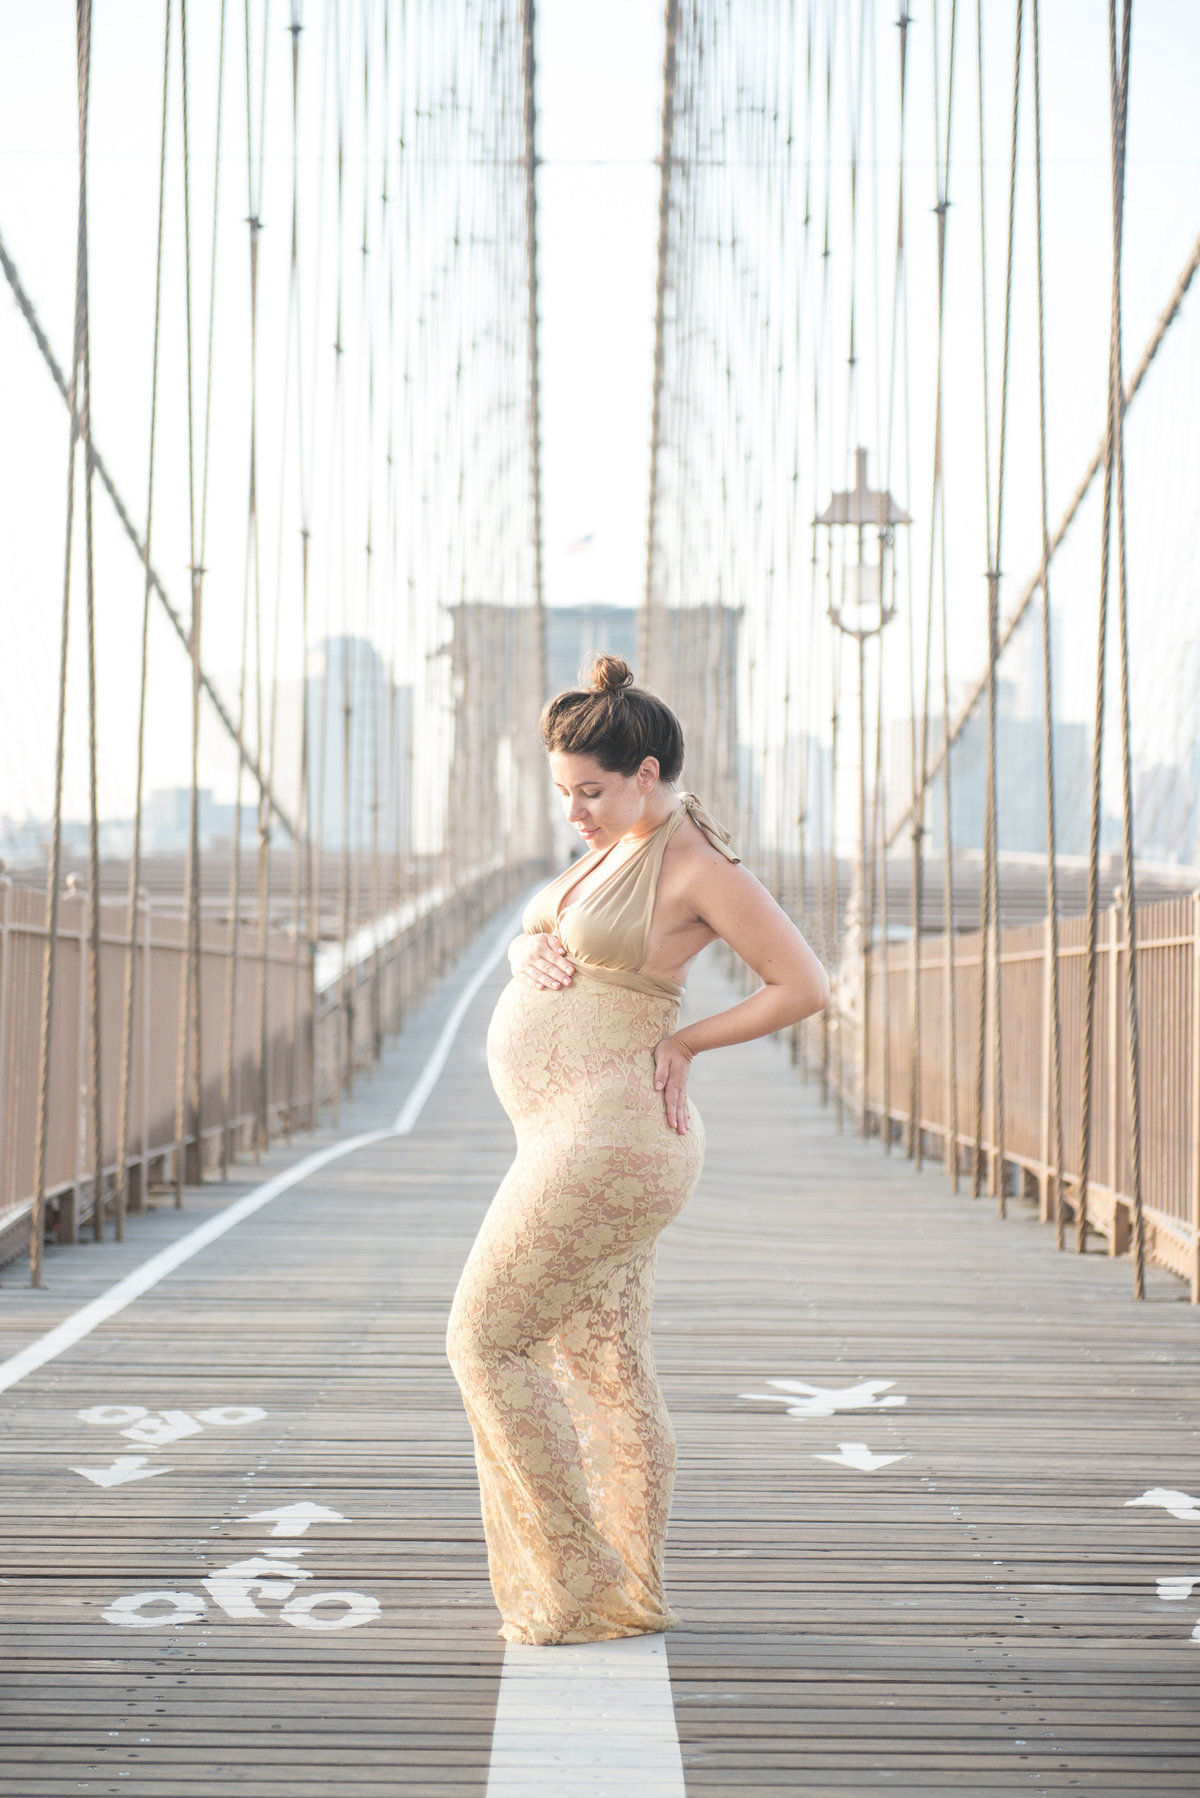 pregnancy-maternity-photos-ocean-county-nj-portrait0studio-imagery-by-marianne-9